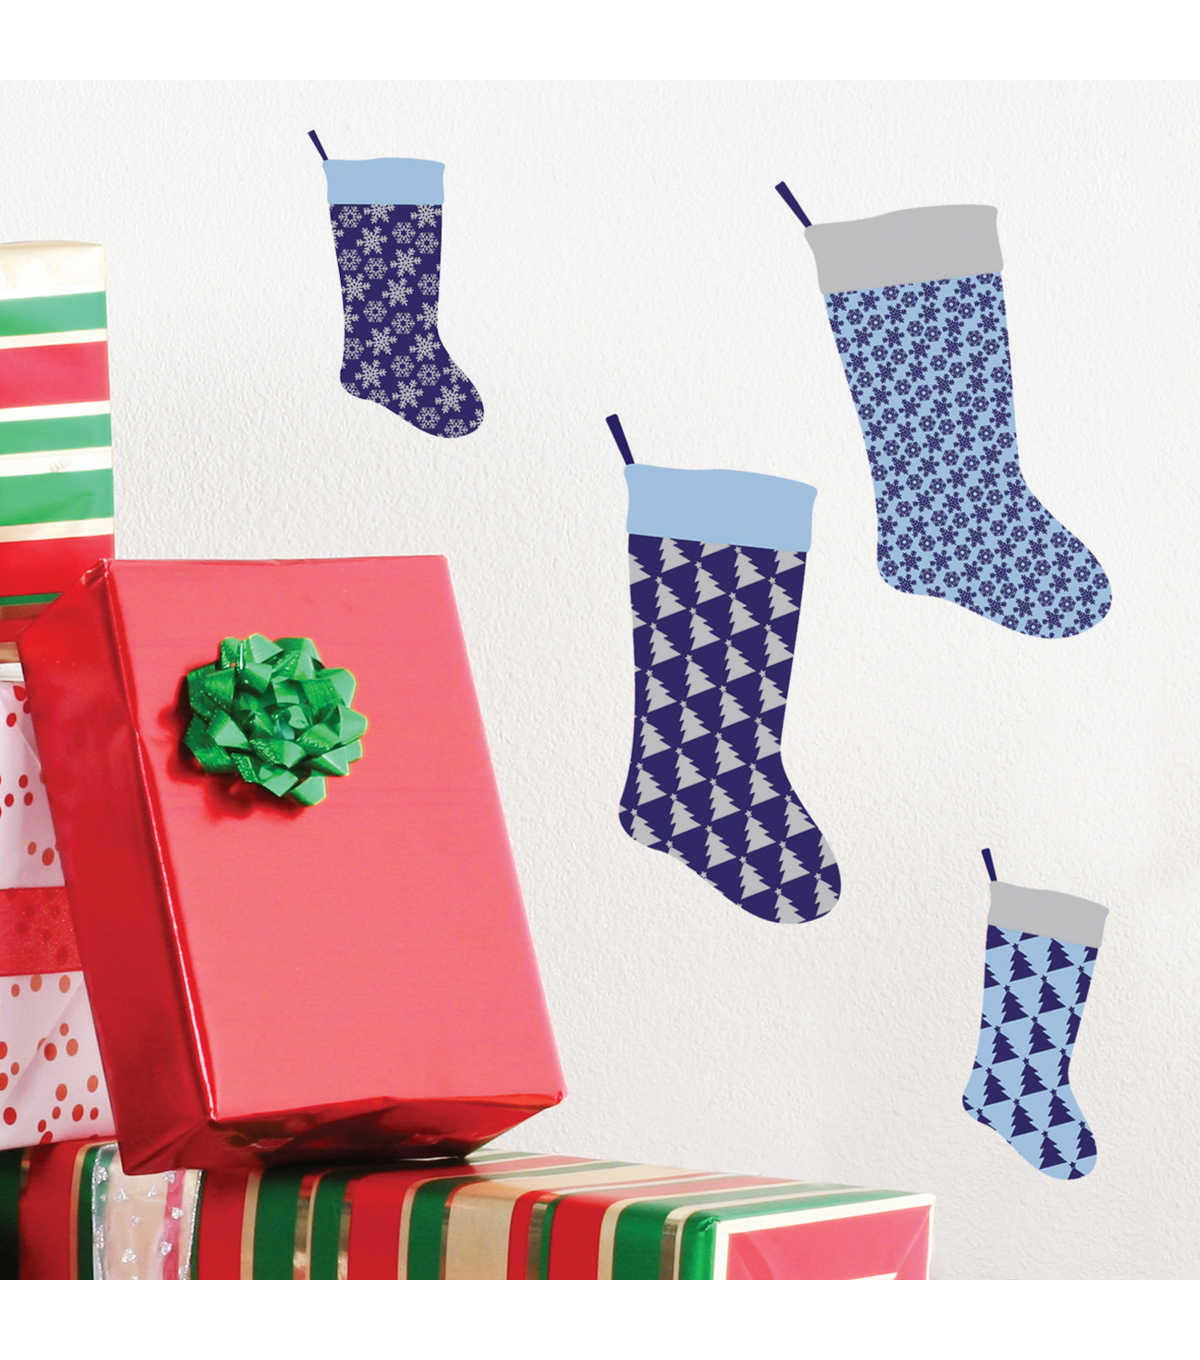 Peel & Stick Wall Art-Patterned Stockings